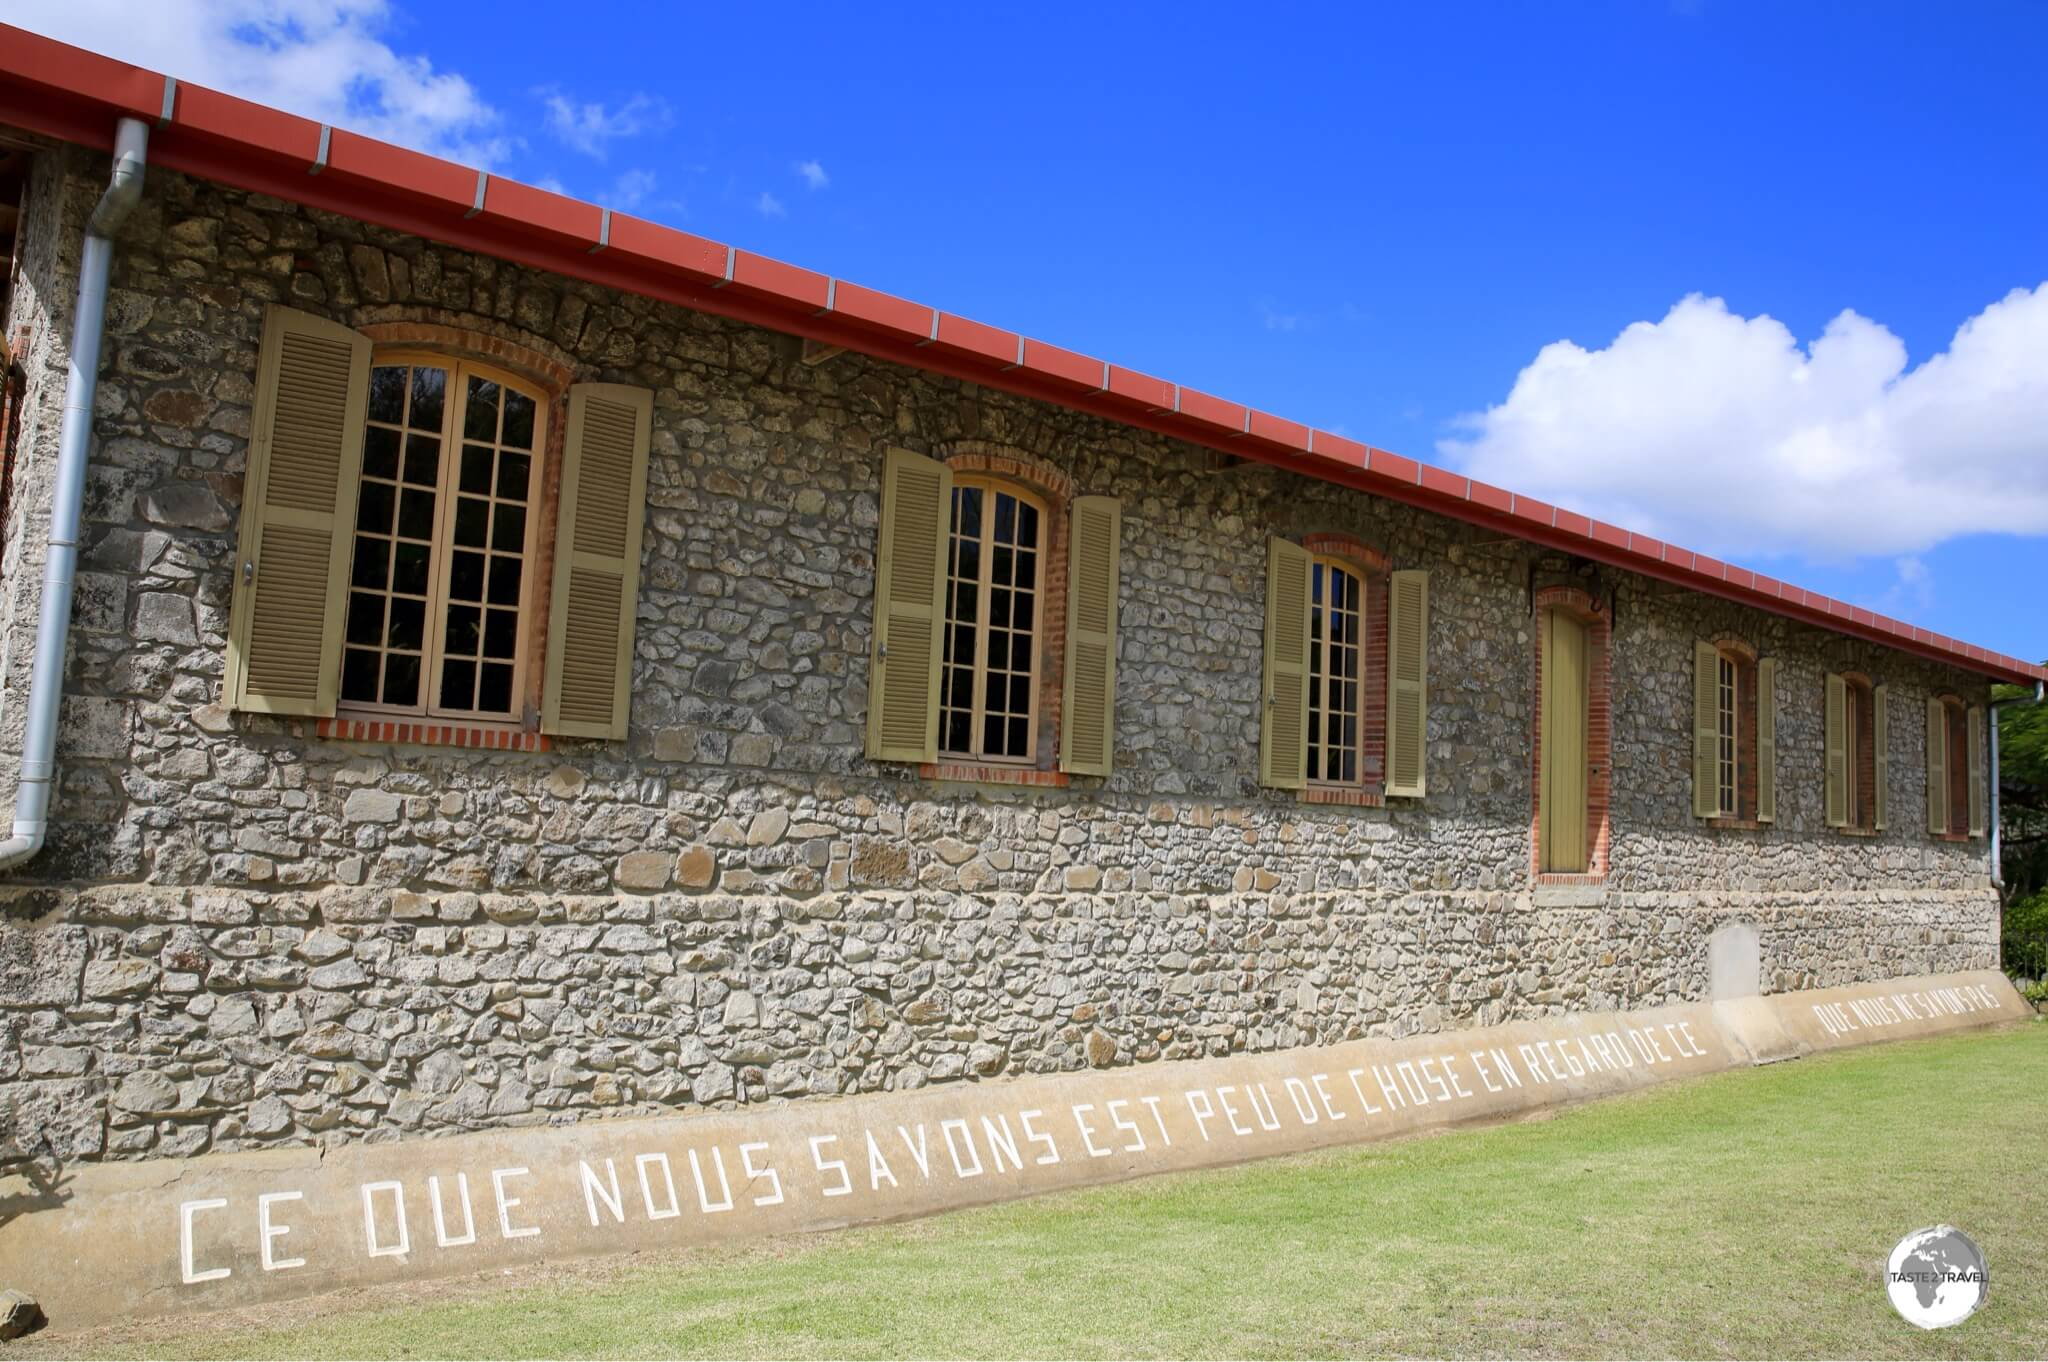 Located on the main road south of town, the Bourail museum includes informative displays on the history of this agricultural region.